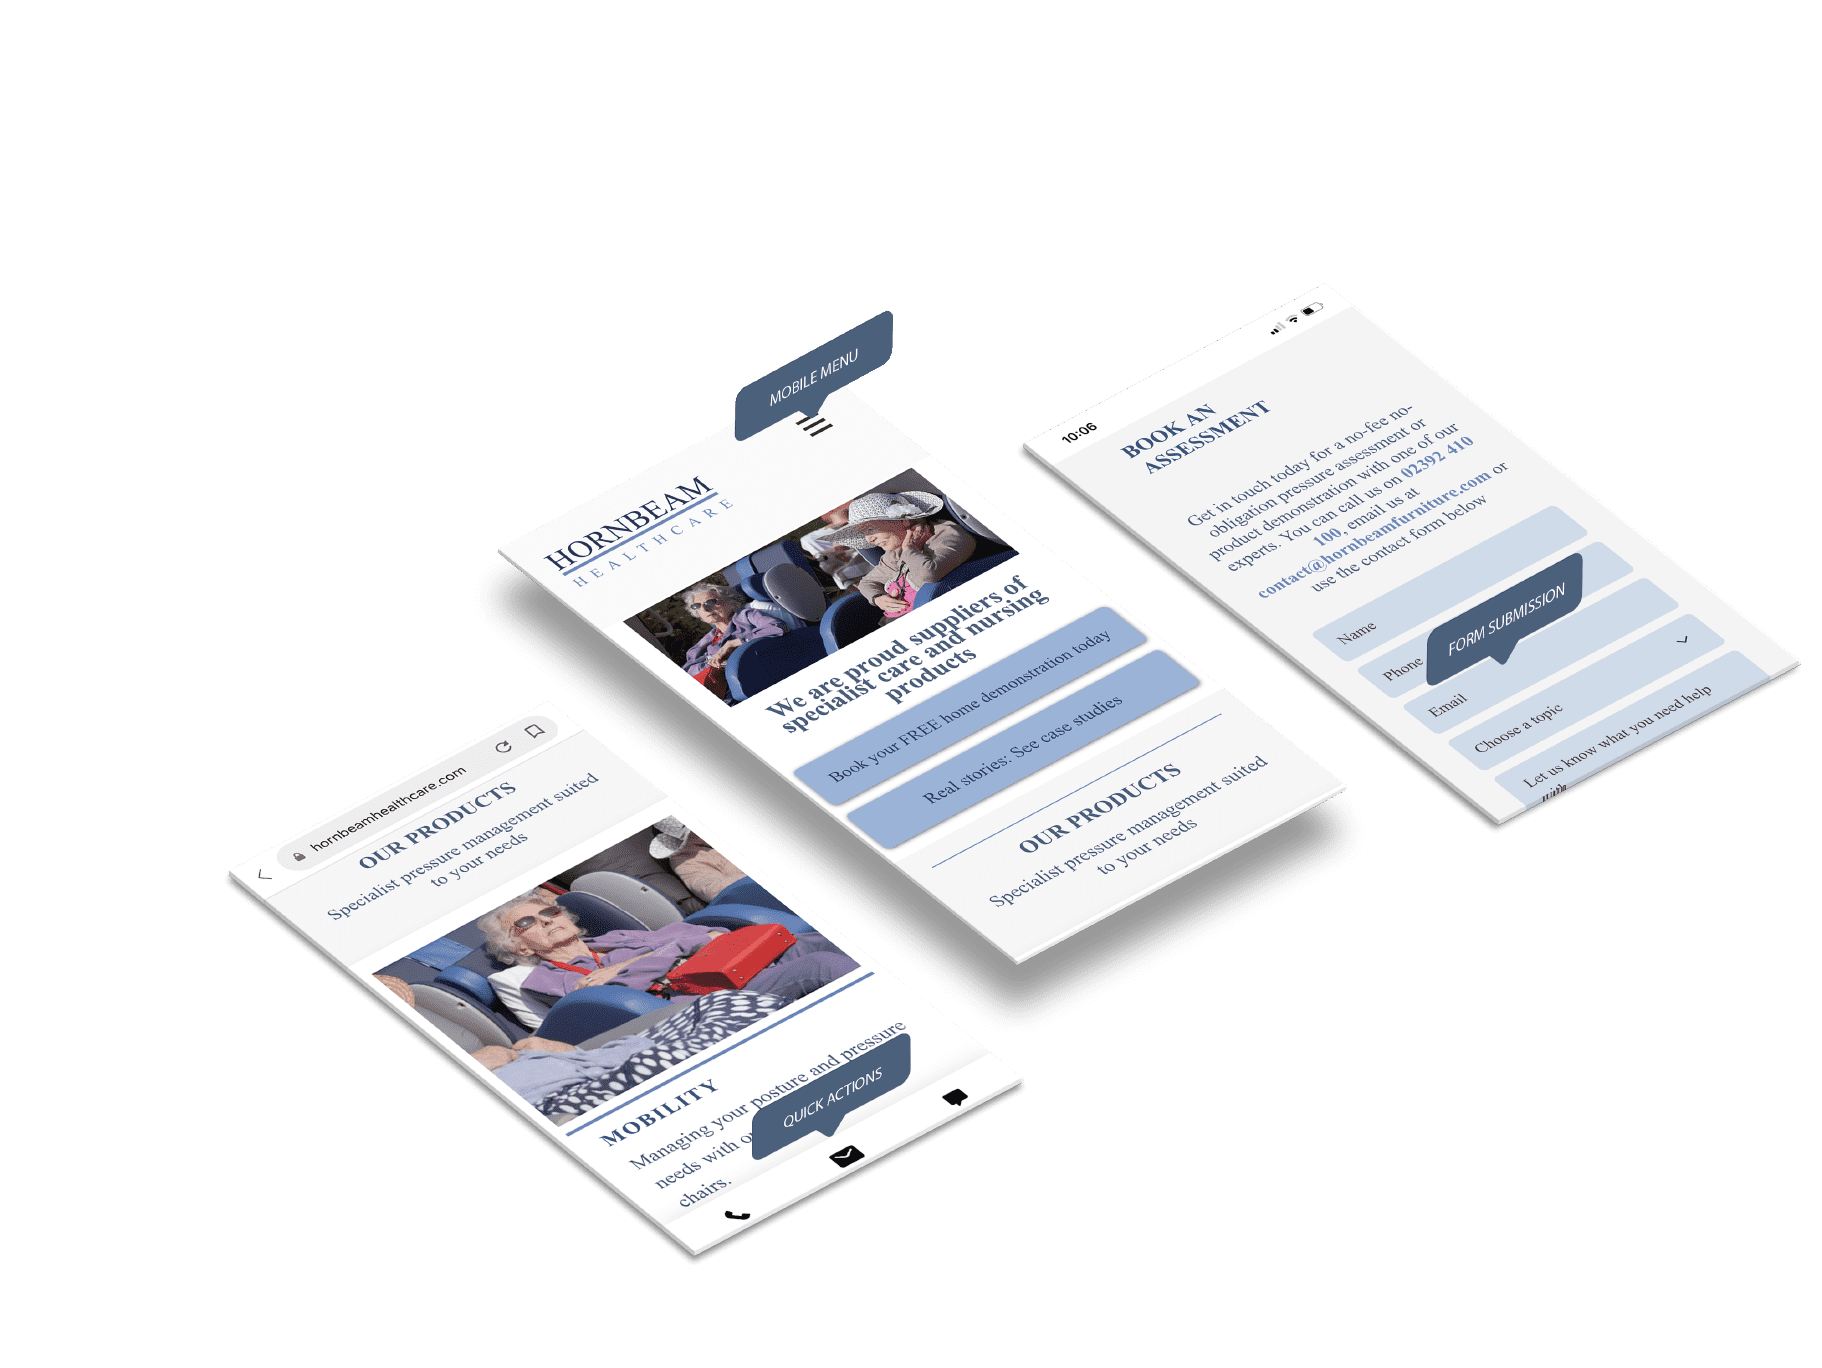 Mobile UX for healthcare